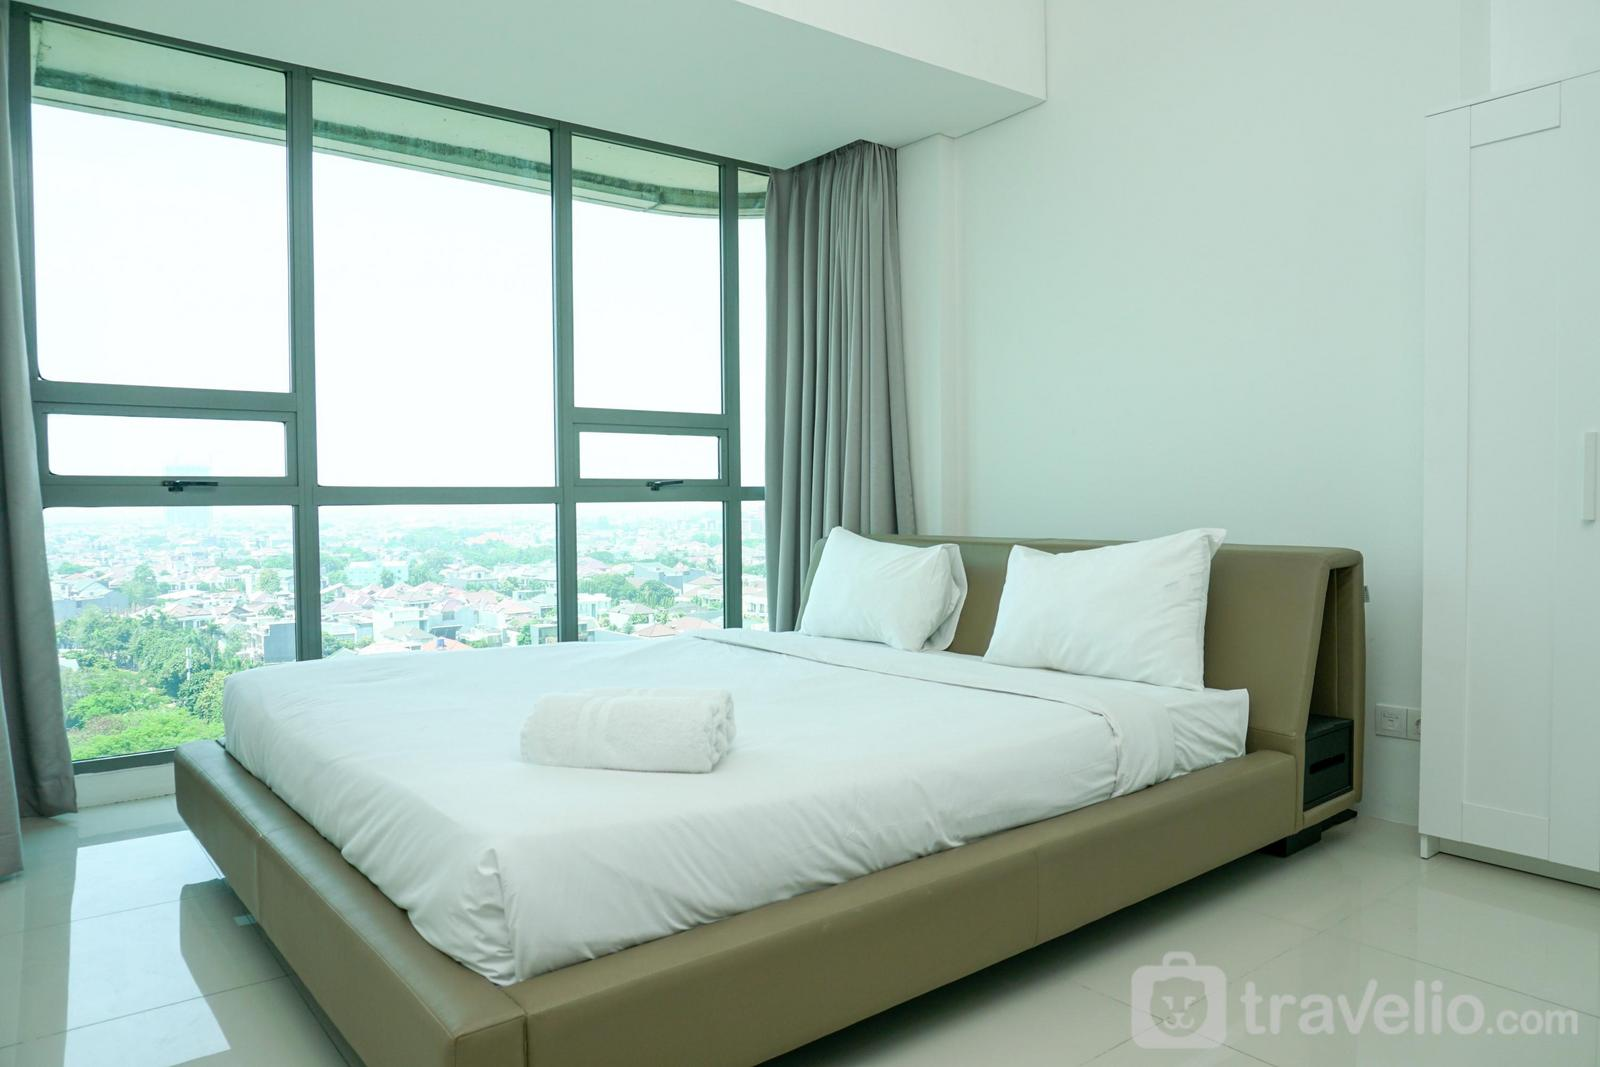 St. Moritz Puri - Luxurious 3BR near Shopping Mall at St. Moritz Apartment By Travelio